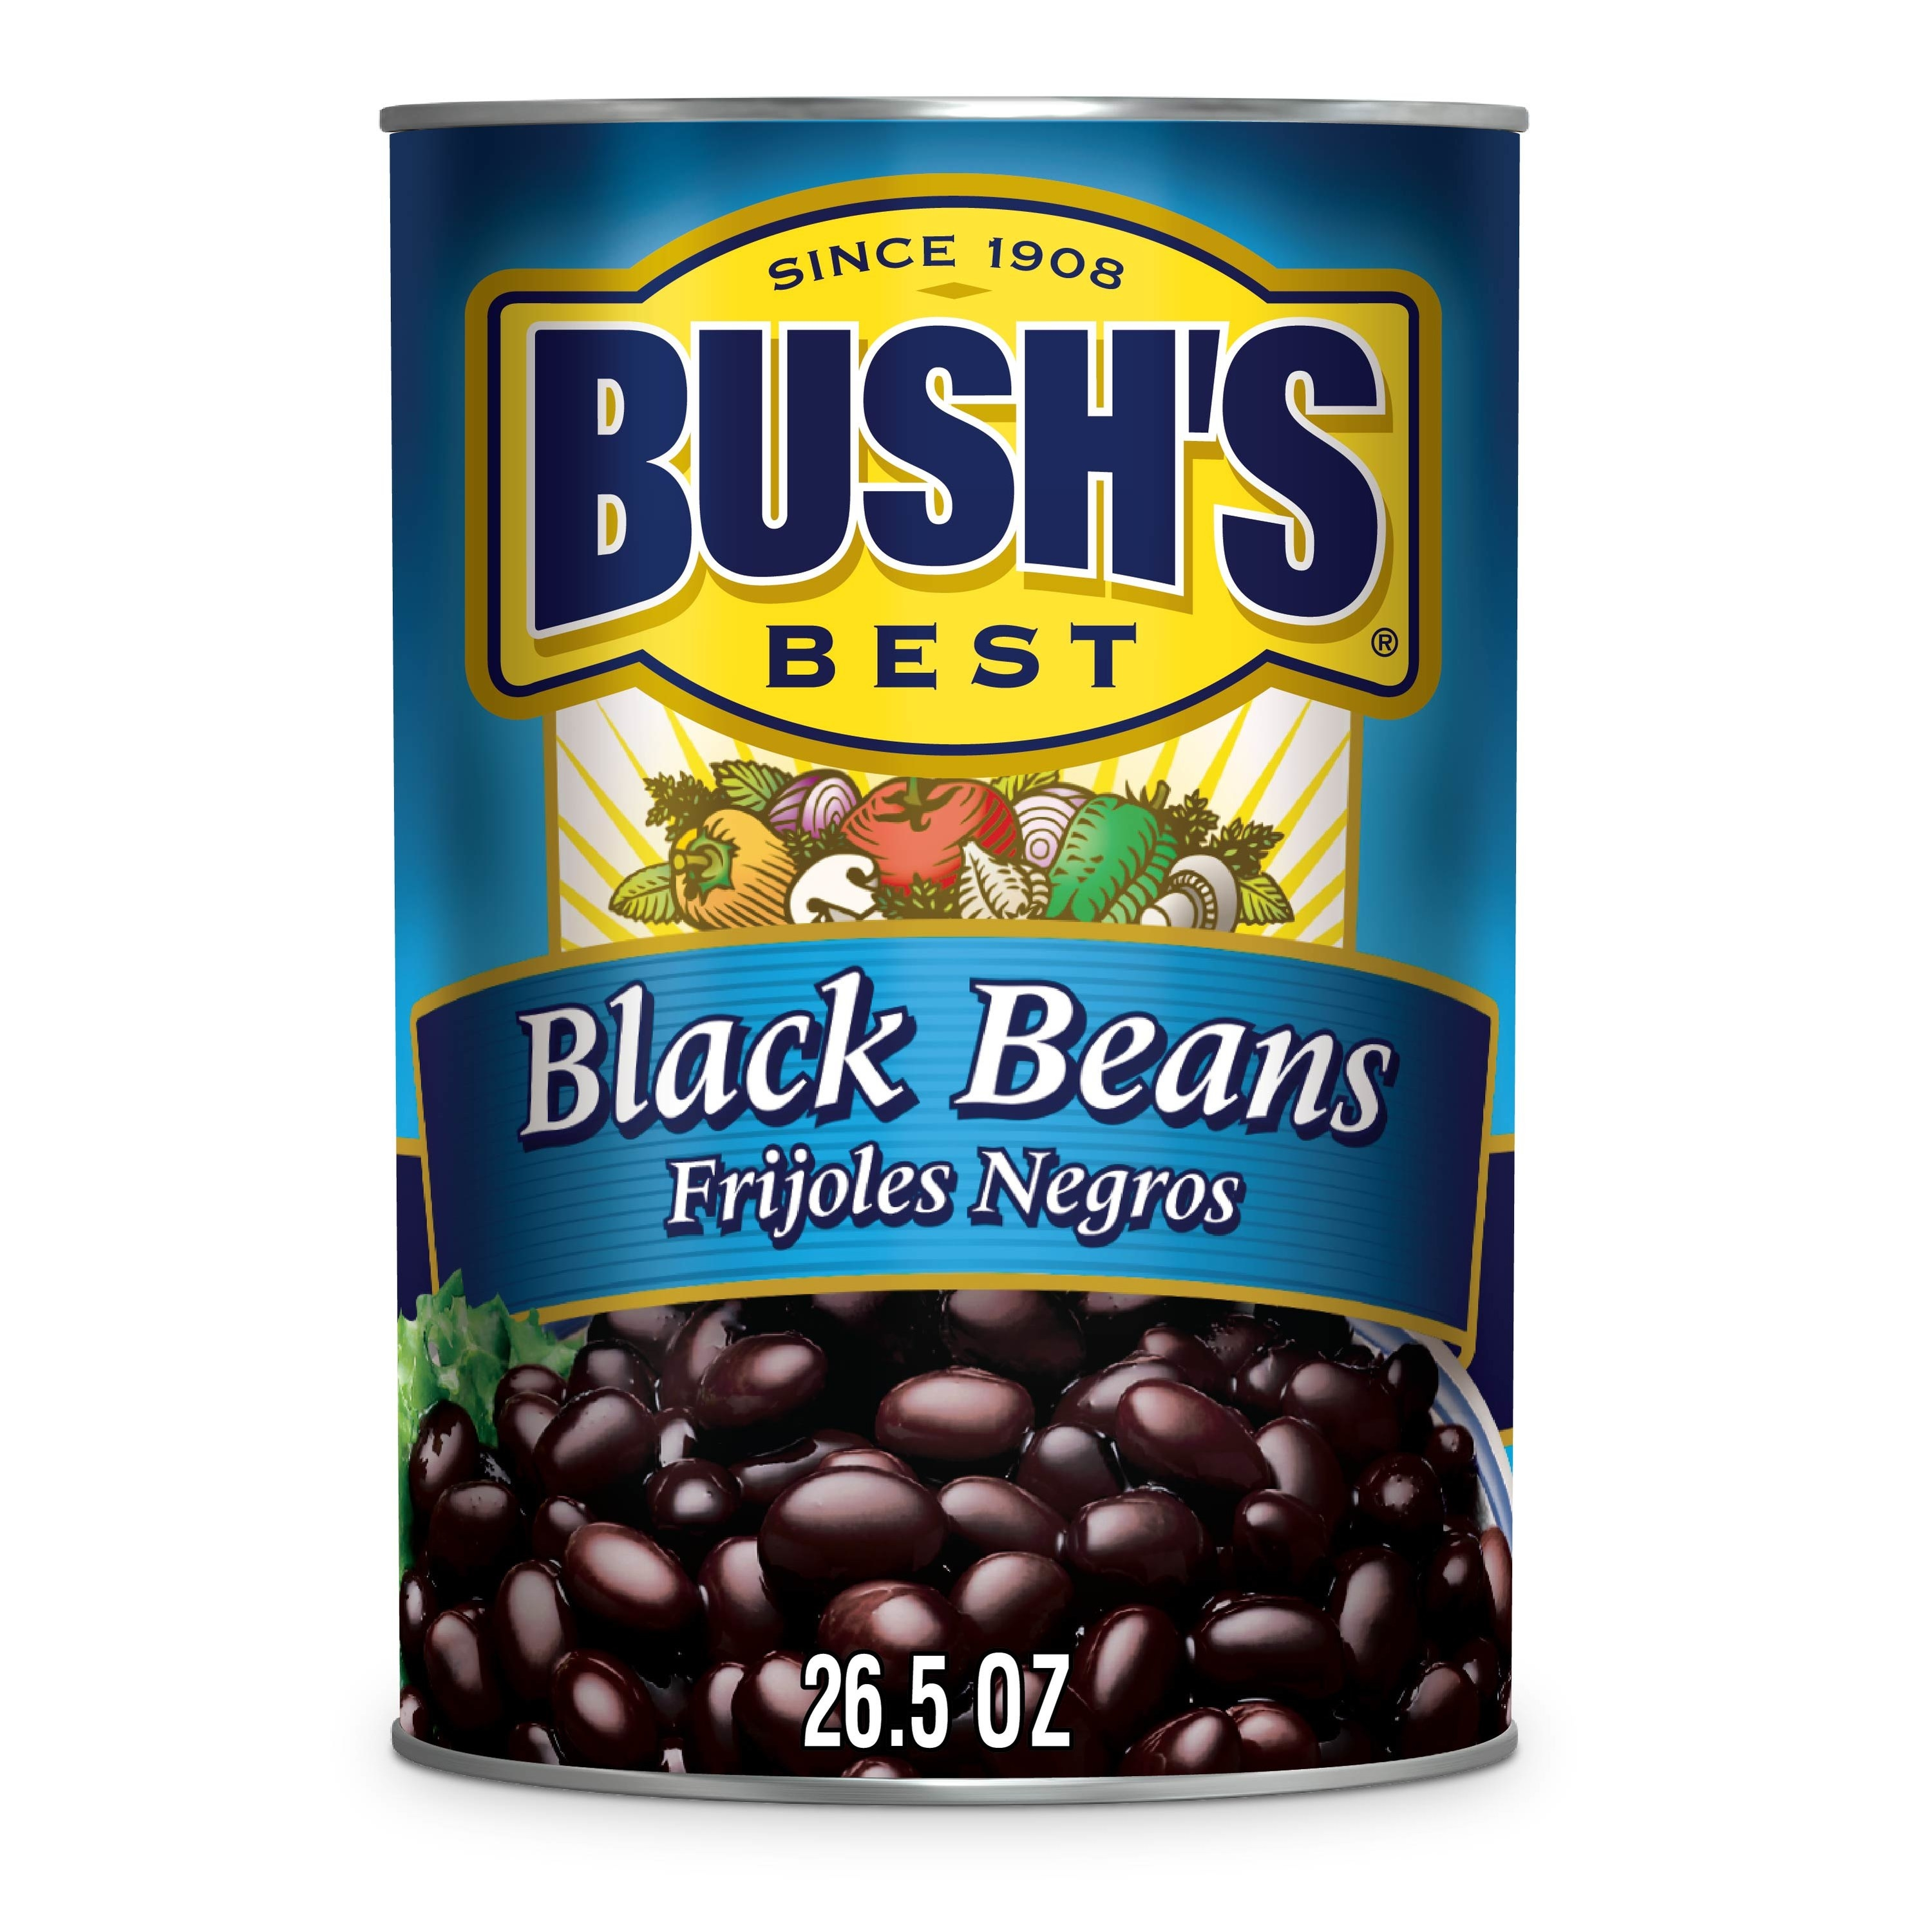 the blue can of beans